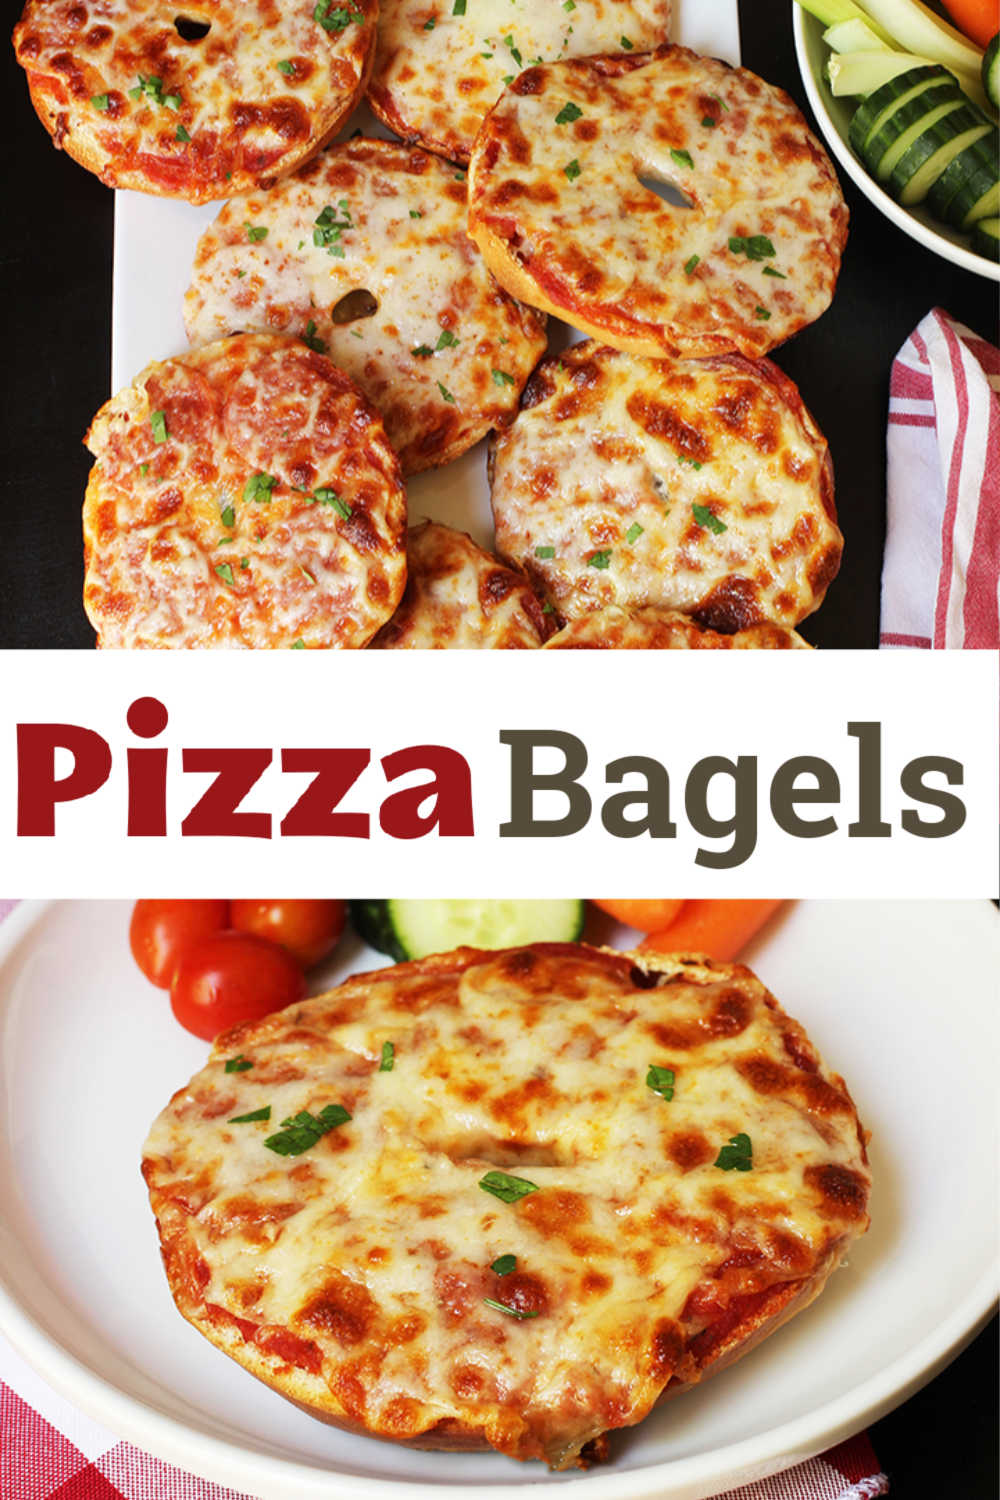 A plate of food with a slice of pizza, with Pizza bagel